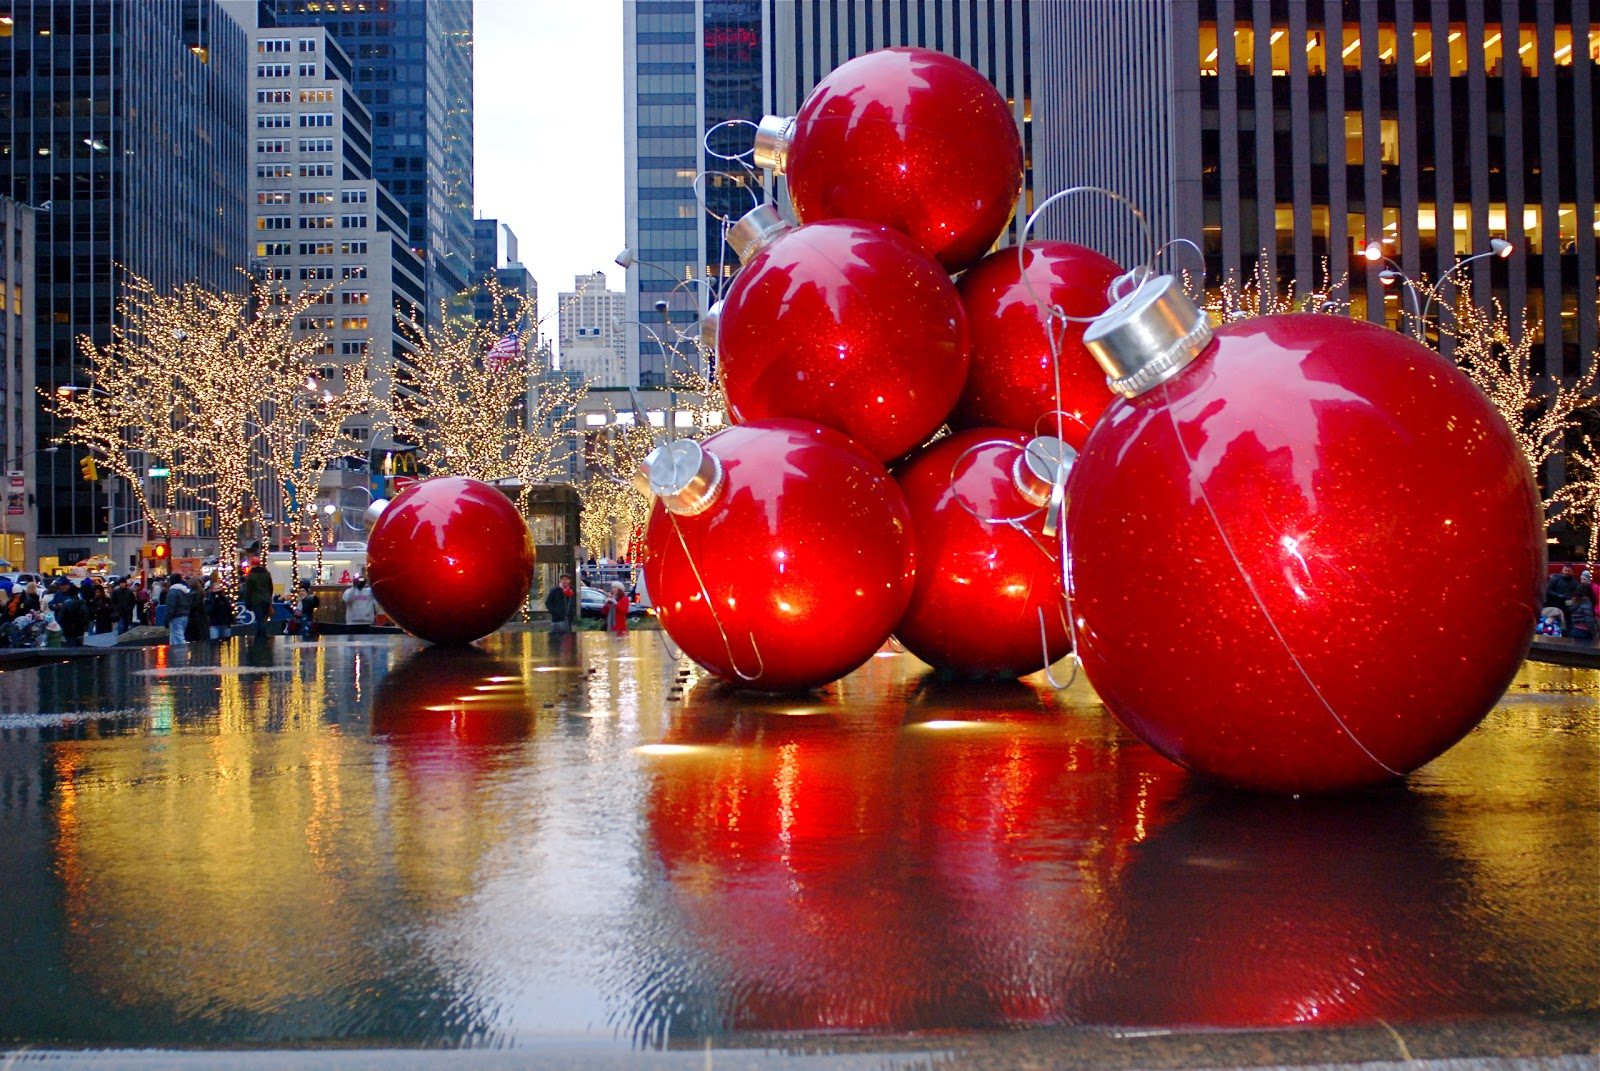 Nyc nyc christmas holiday decorations on sixth avenue for Christmas decorations images